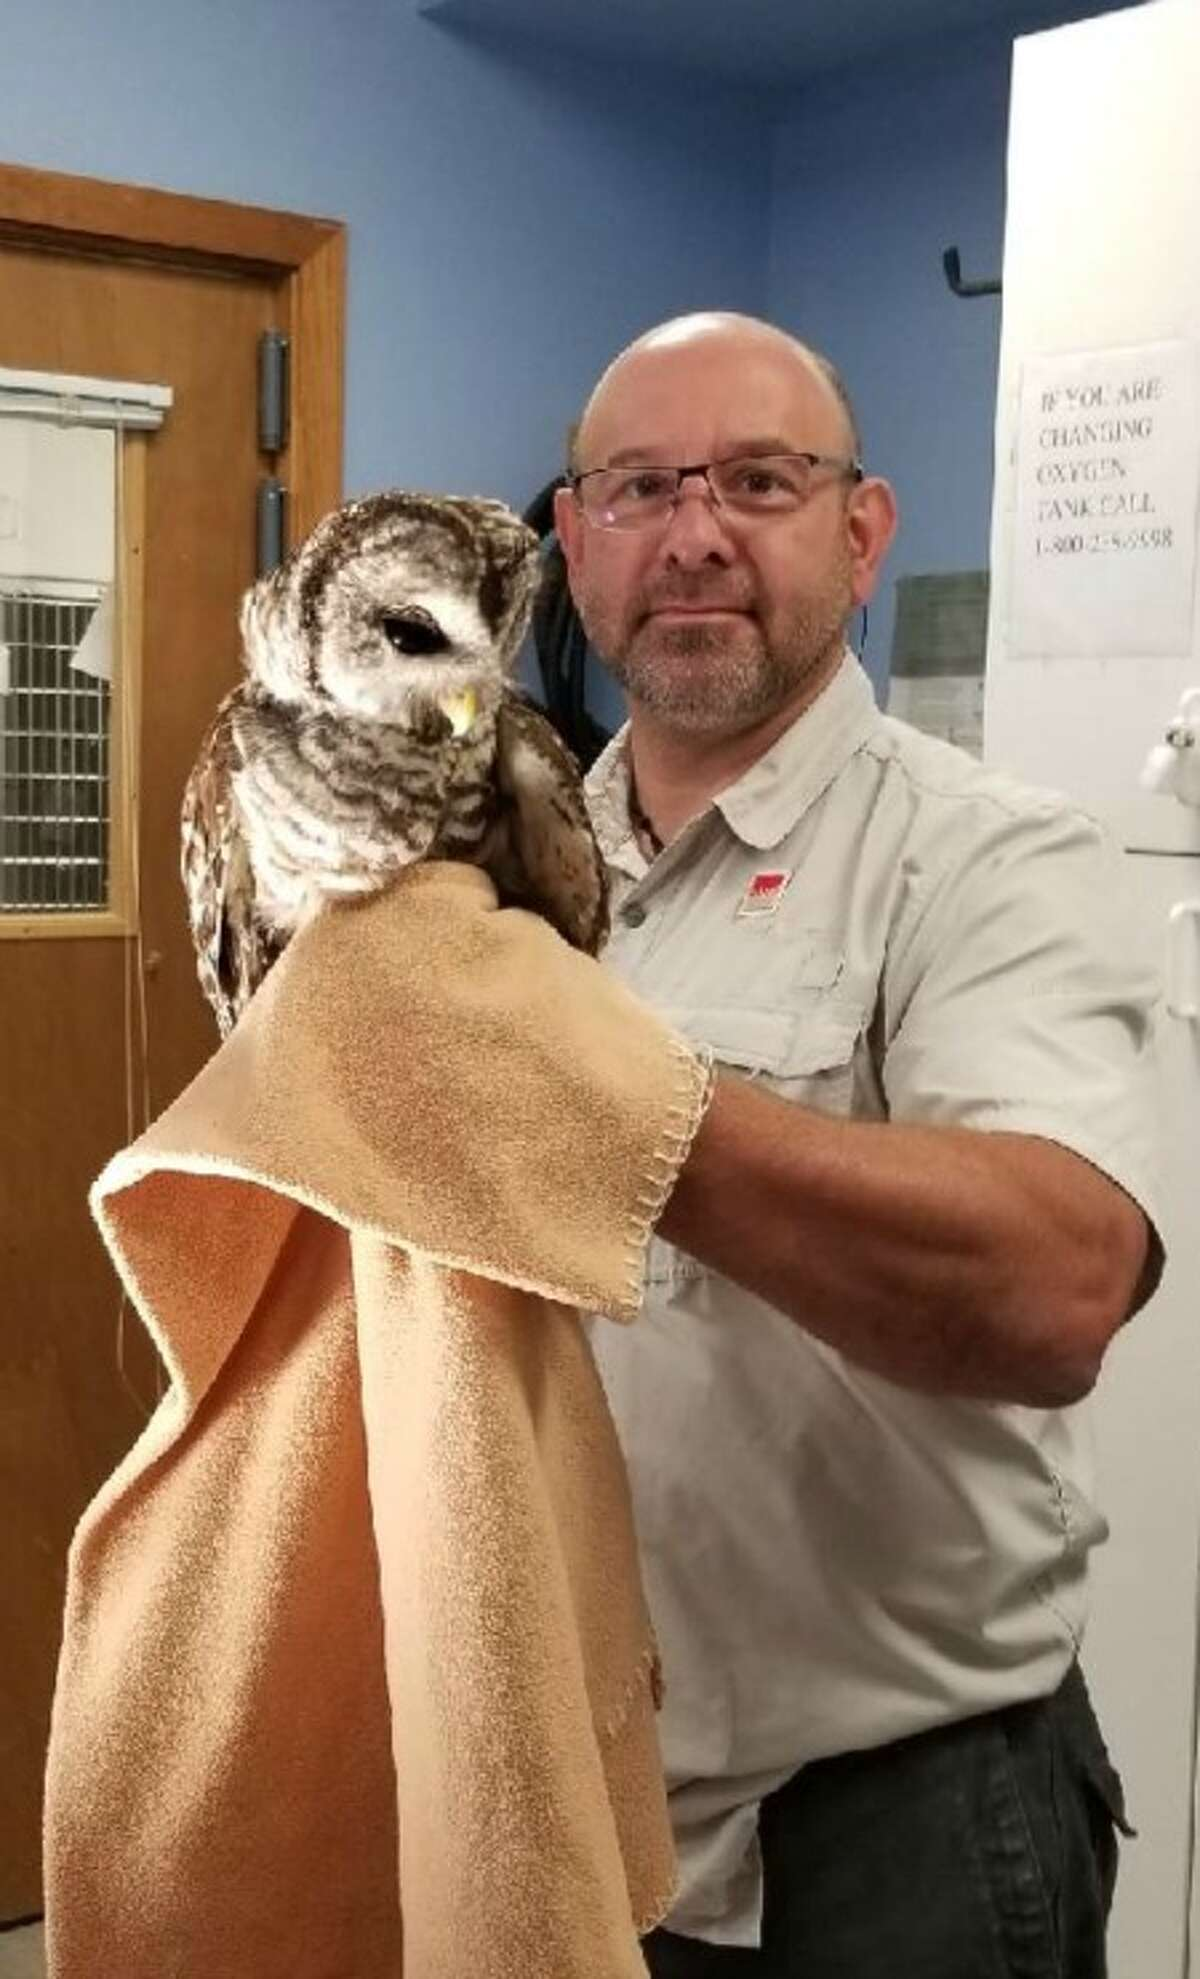 Animal Control took the owl to Countryside Veterinary Hospital, where Dr. Jim Micinilio (pictured) treated and removed the remaining netting.